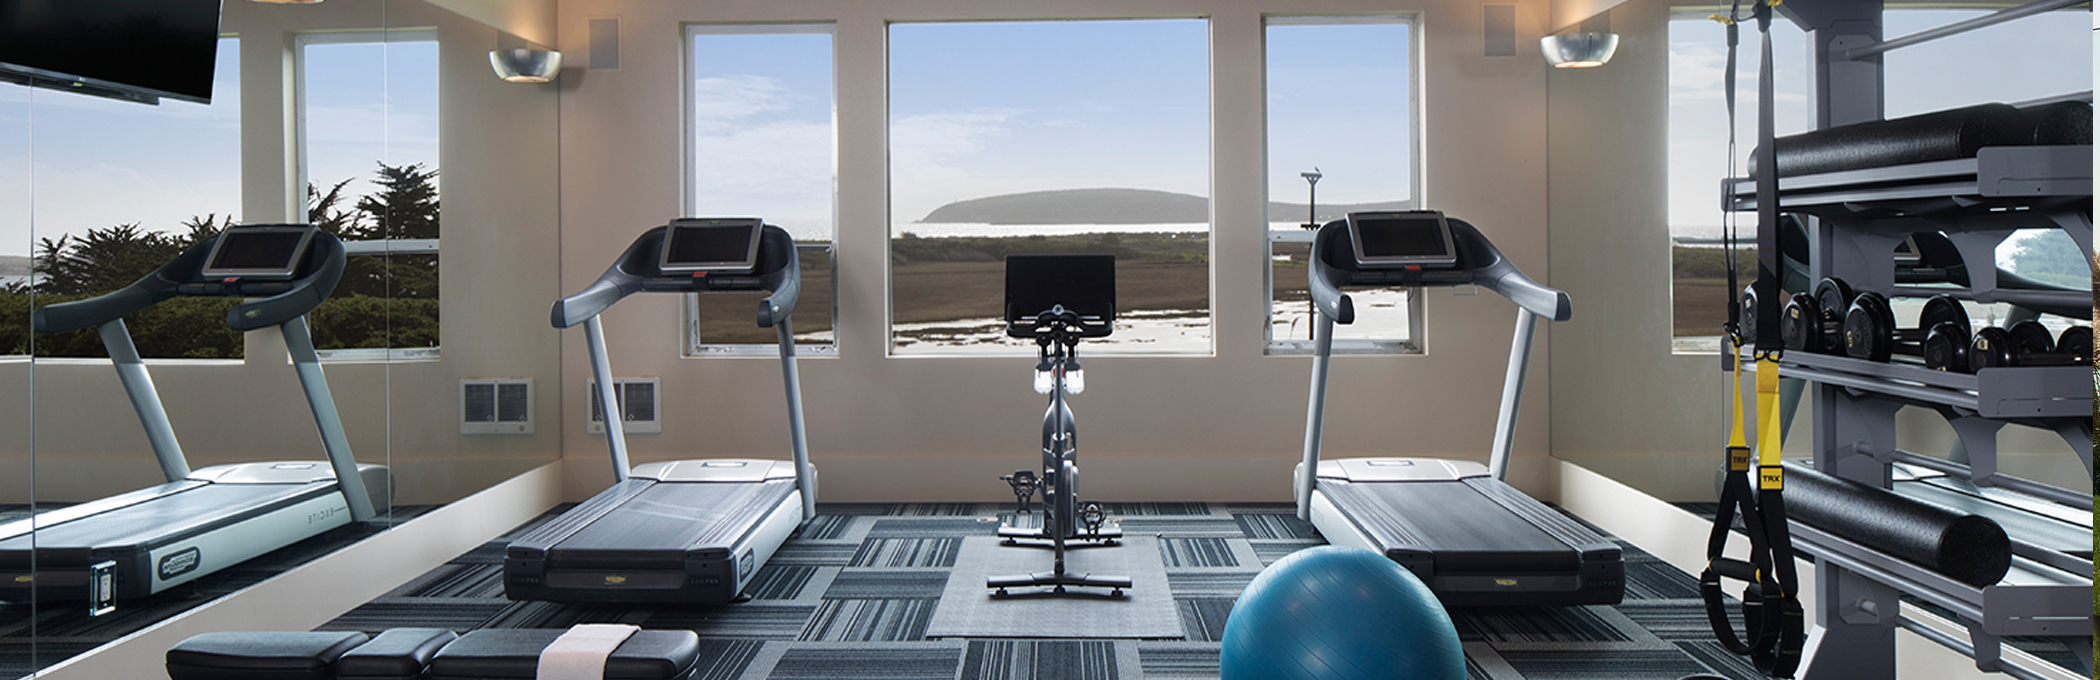 fitness center with two treadmills and a bike